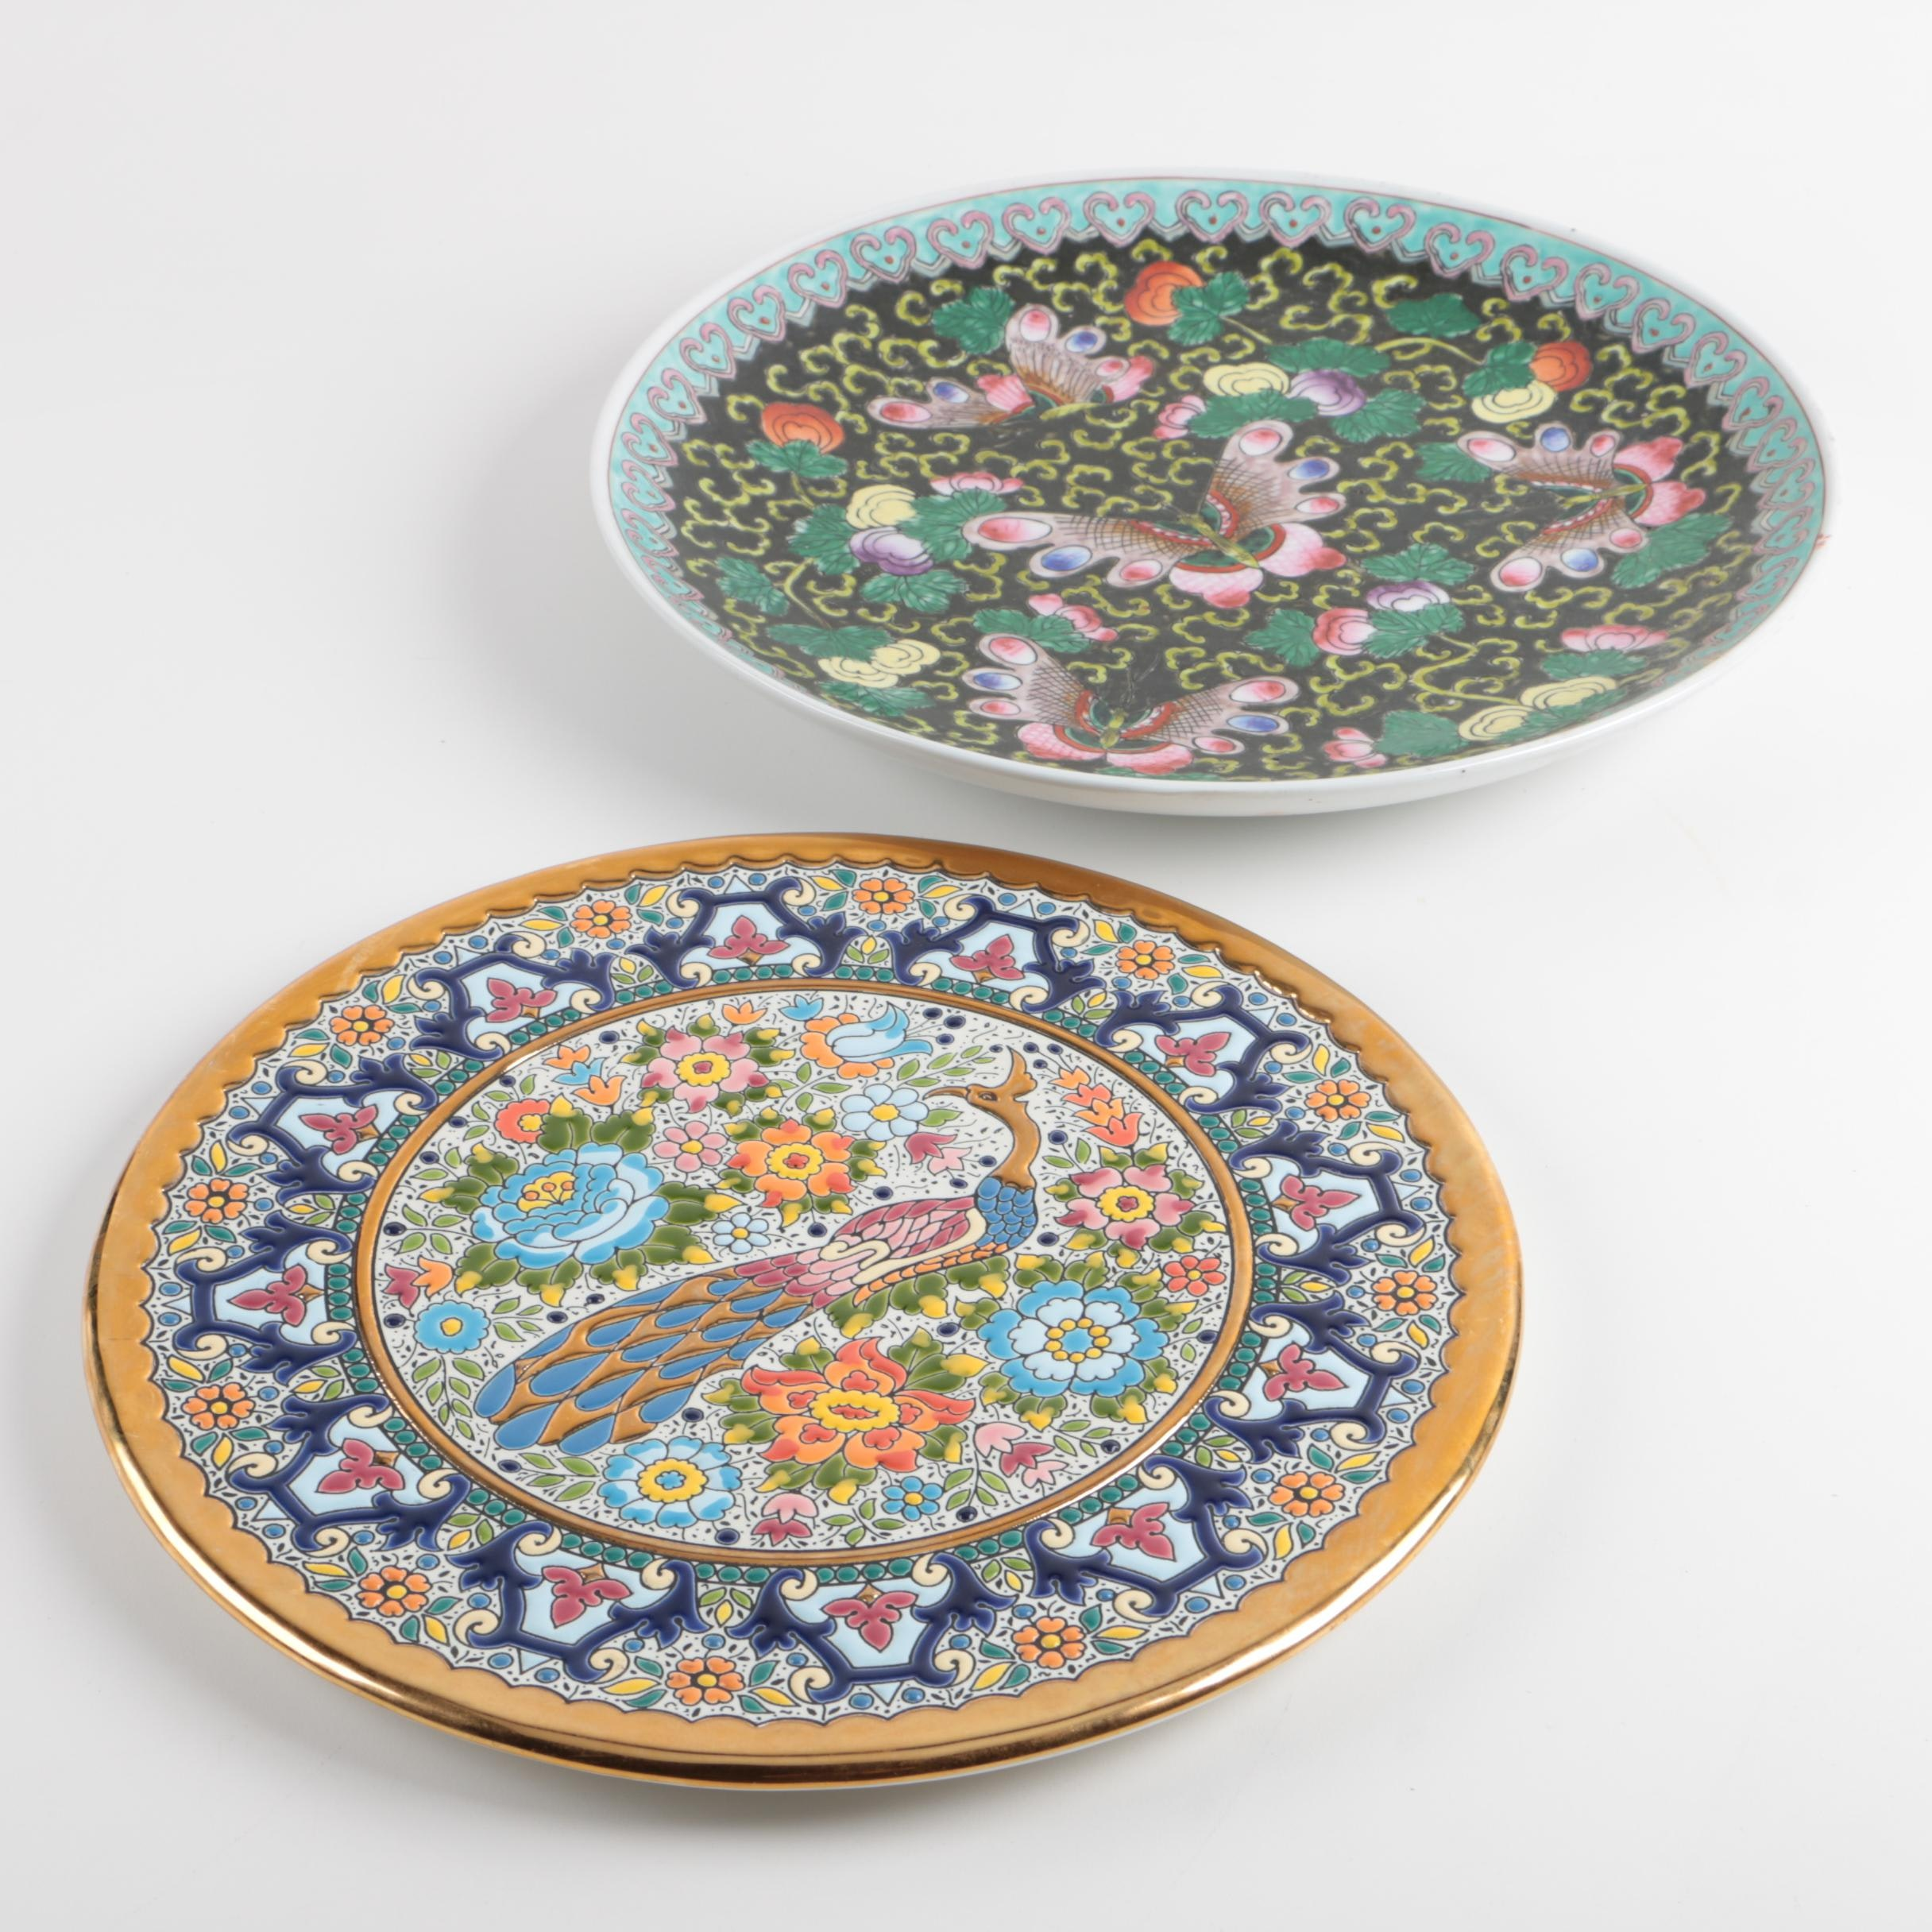 Cearco Spanish and Chinese Decorative Plates